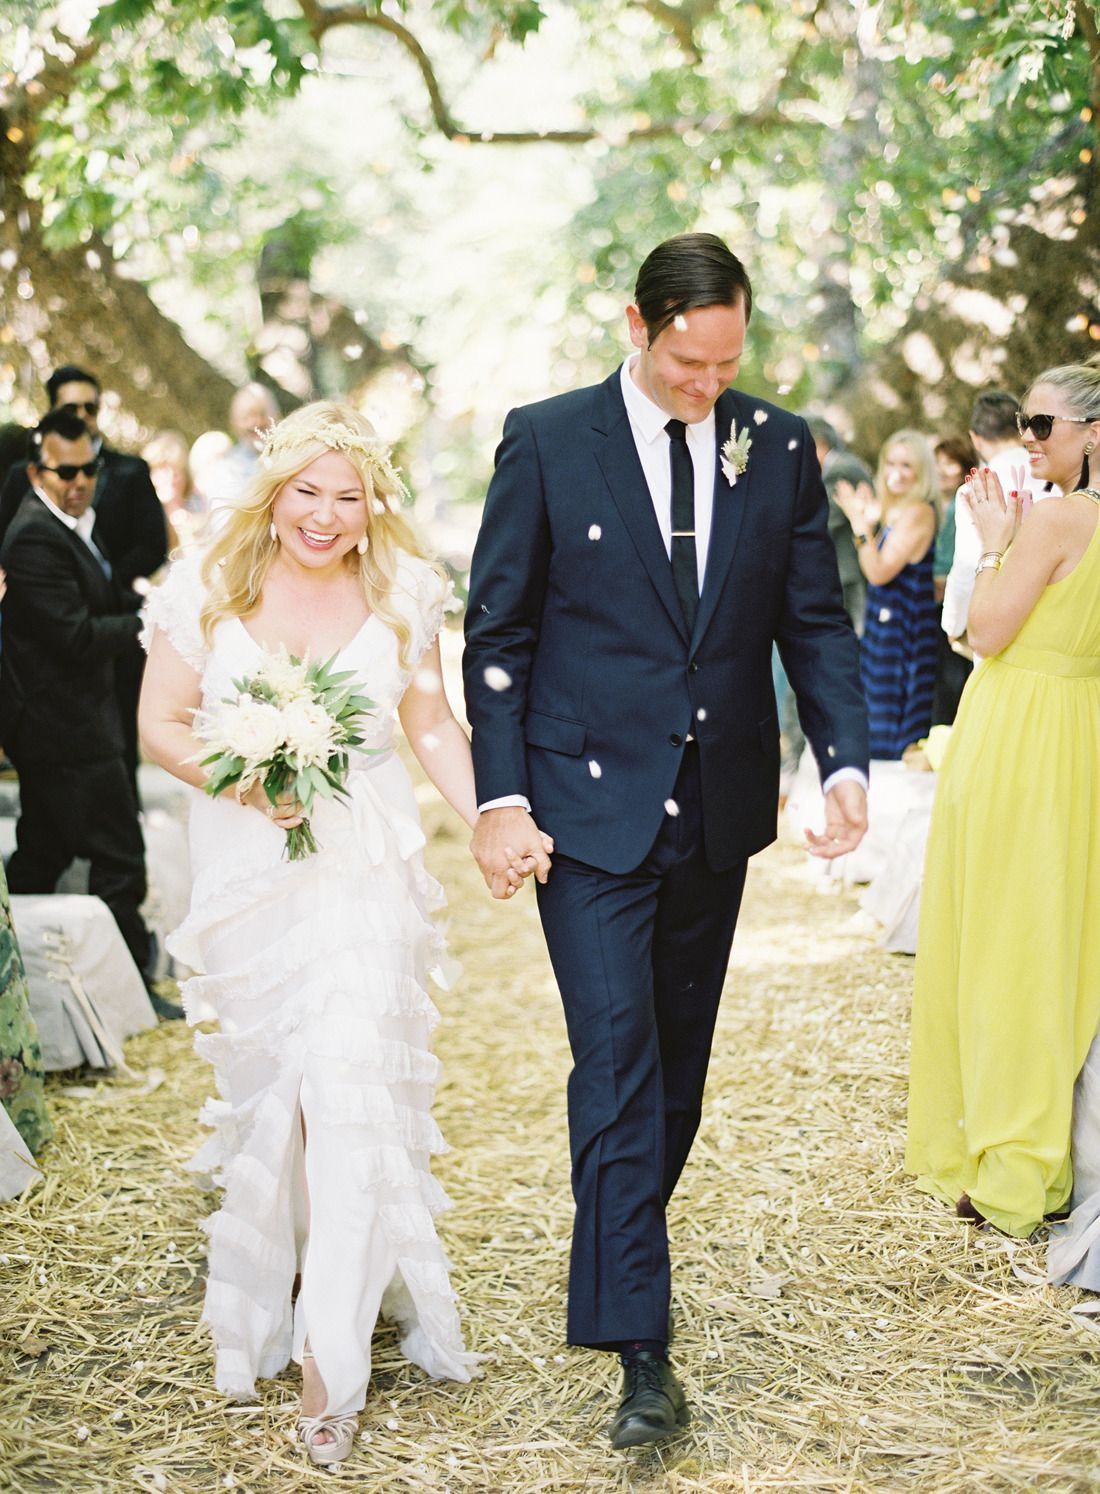 the trusty old toss gets a modern makeover with popcorn #popcorn, #toss  Photography: Jose Villa Photography - josevillaphoto.com  Read More: http://www.stylemepretty.com/2014/01/15/rustic-elegance-at-dos-pueblos-ranch/